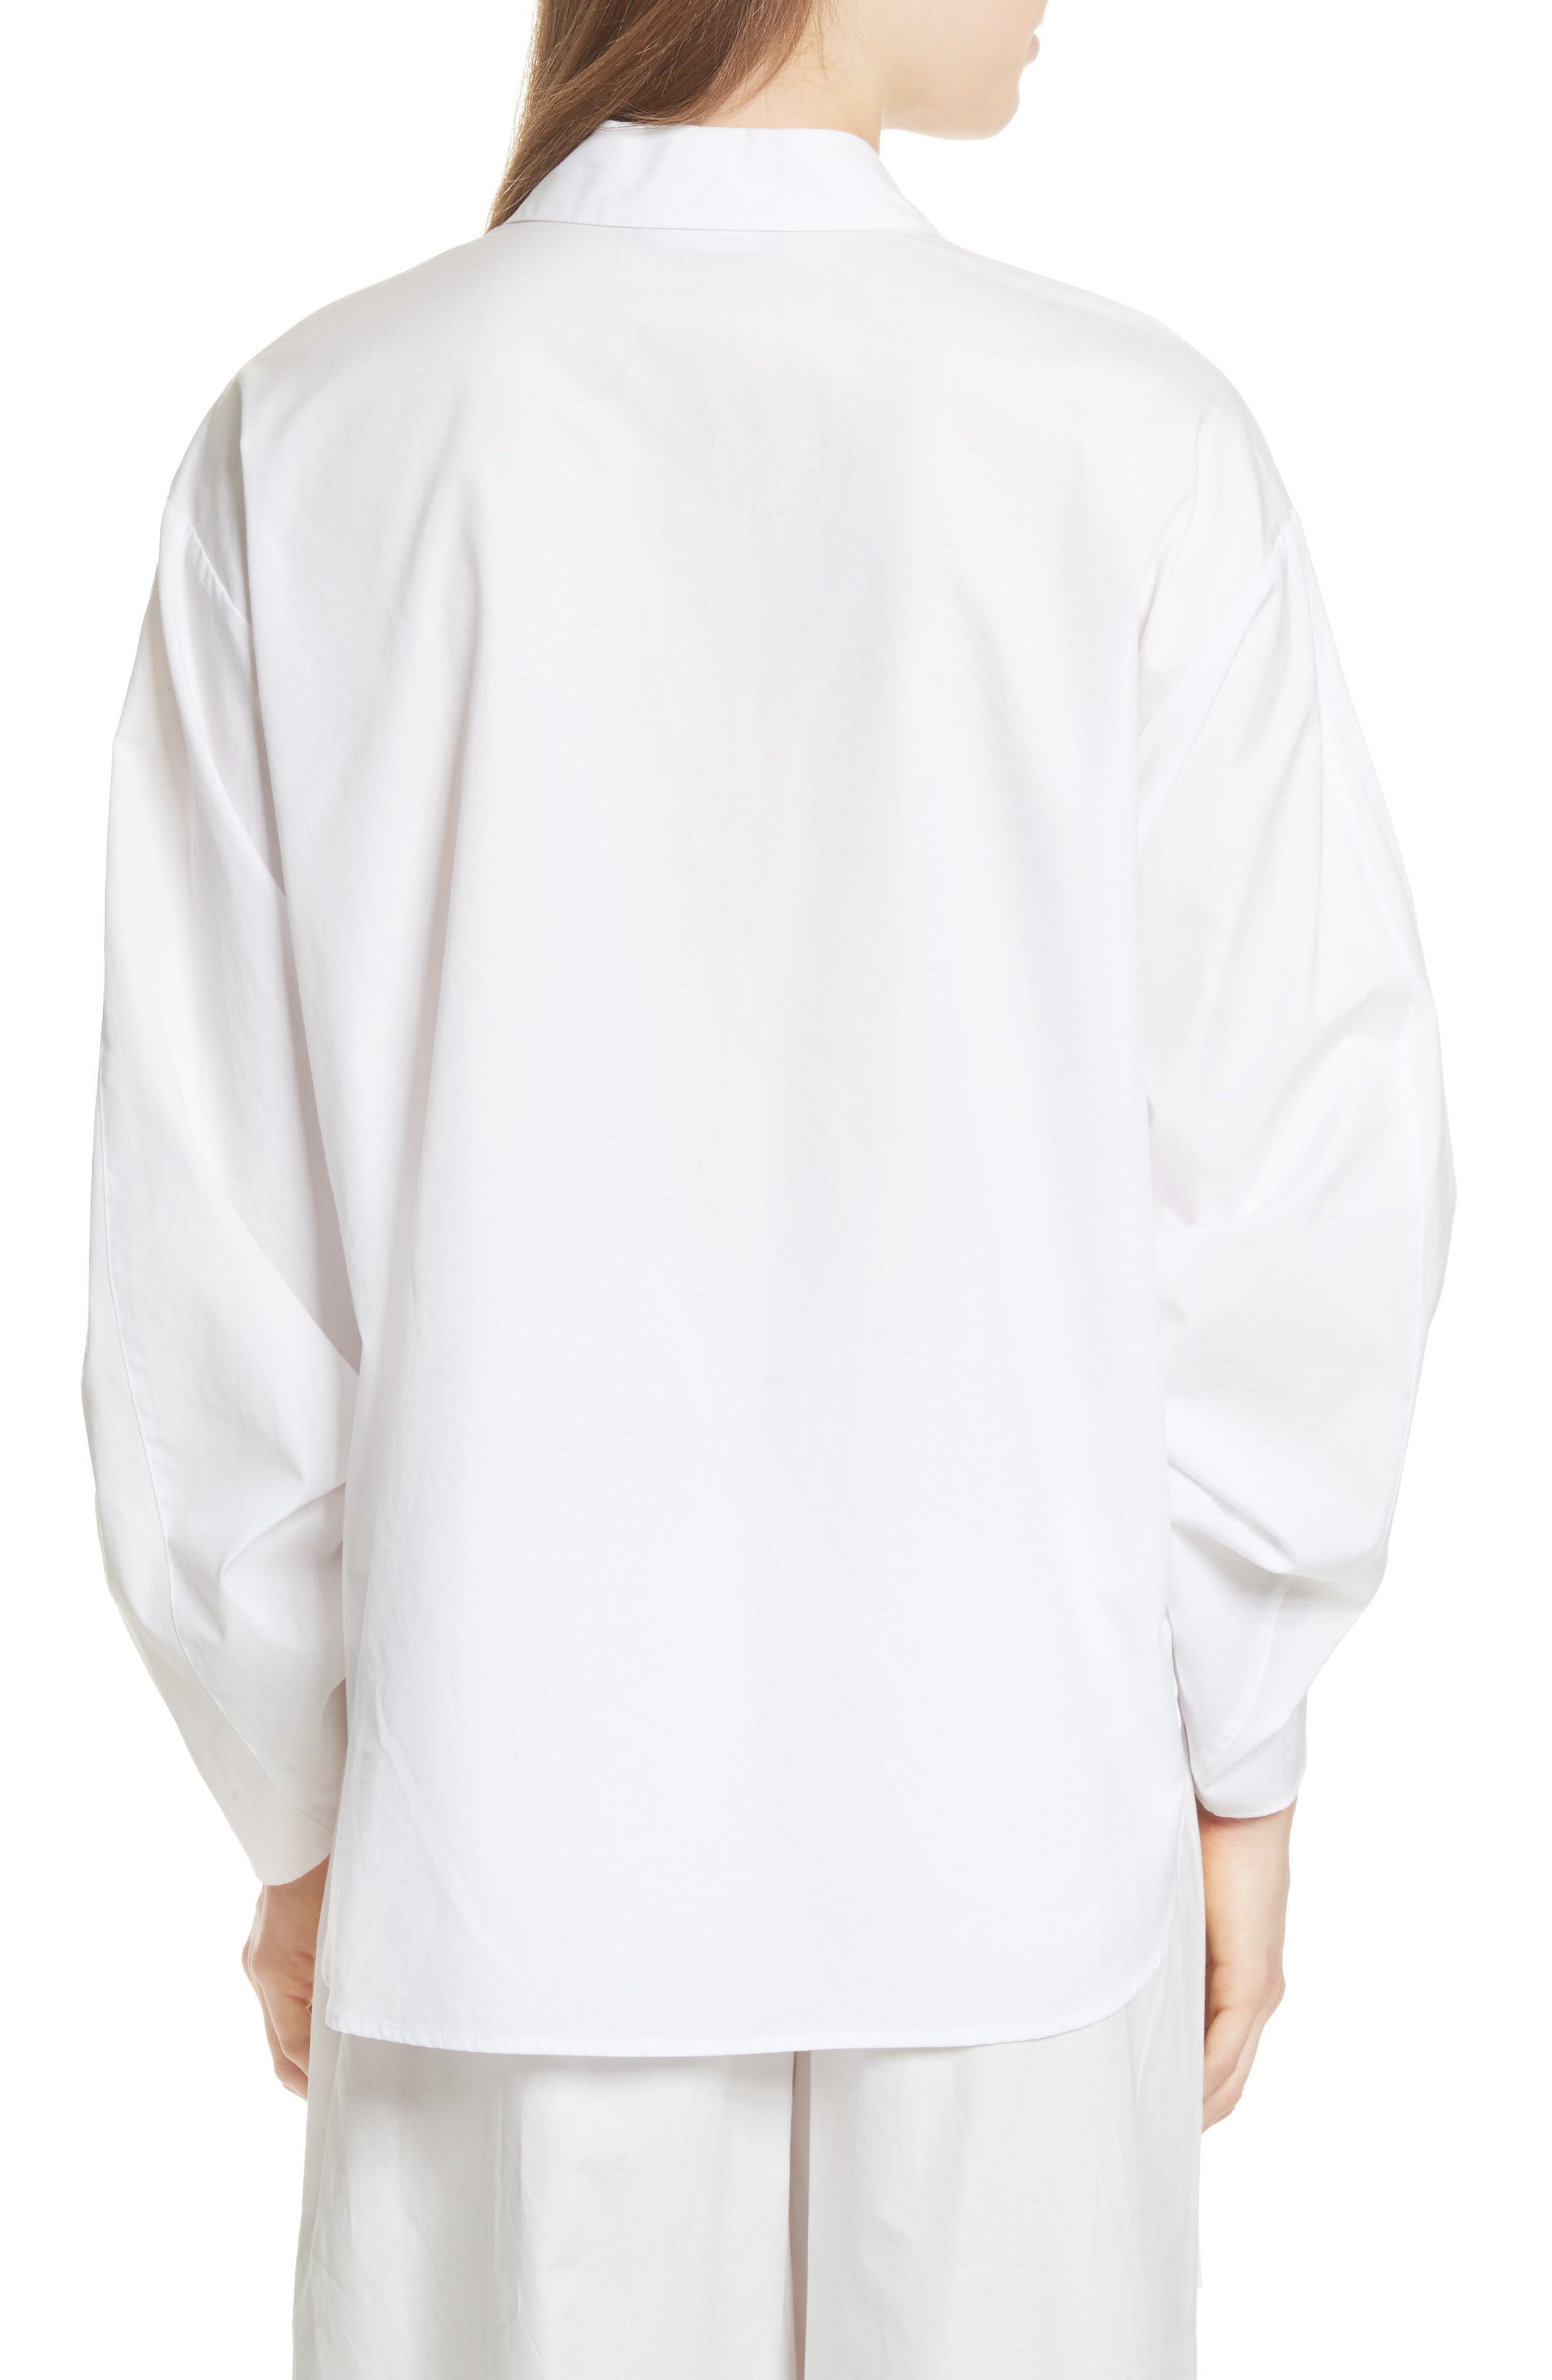 Cinch Sleeve Top,                             Alternate thumbnail 2, color,                             Optic White